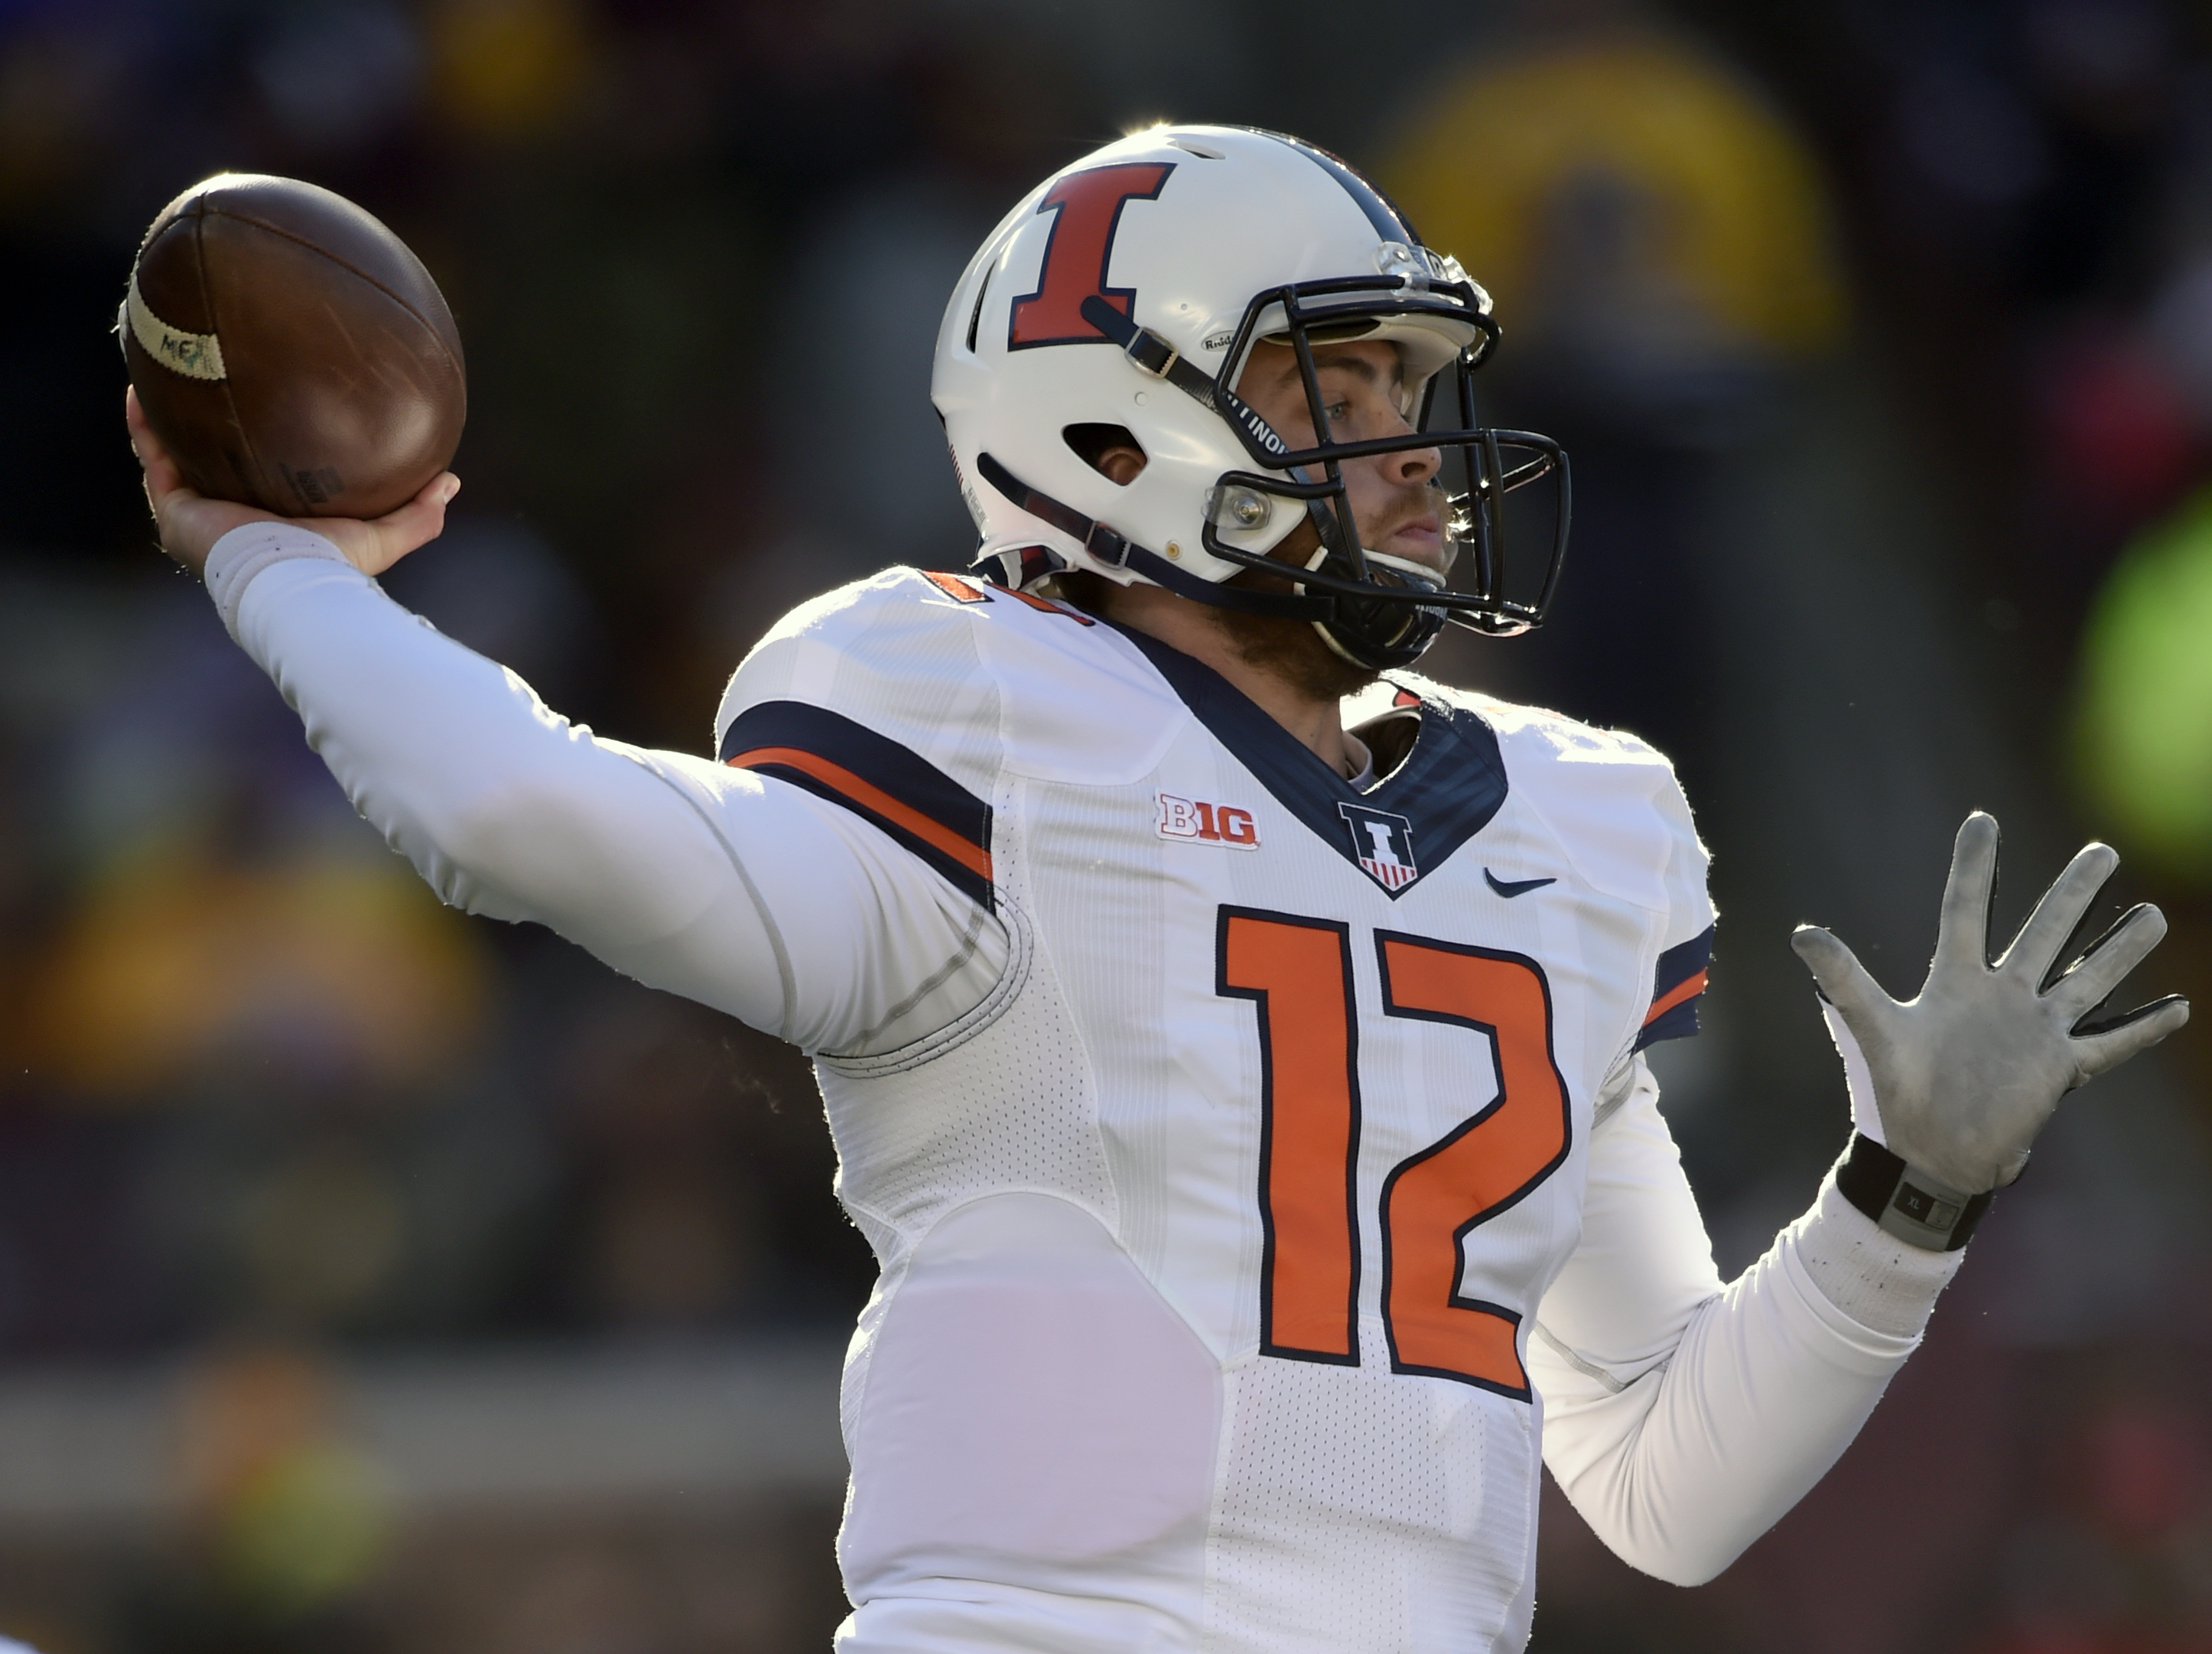 Illinois' quarterback Wes Lunt (12) passes against the Minnesota in the second quarter of an NCAA college football game on Saturday, Nov. 21, 2015, in Minneapolis. (AP Photo/Hannah Foslien)